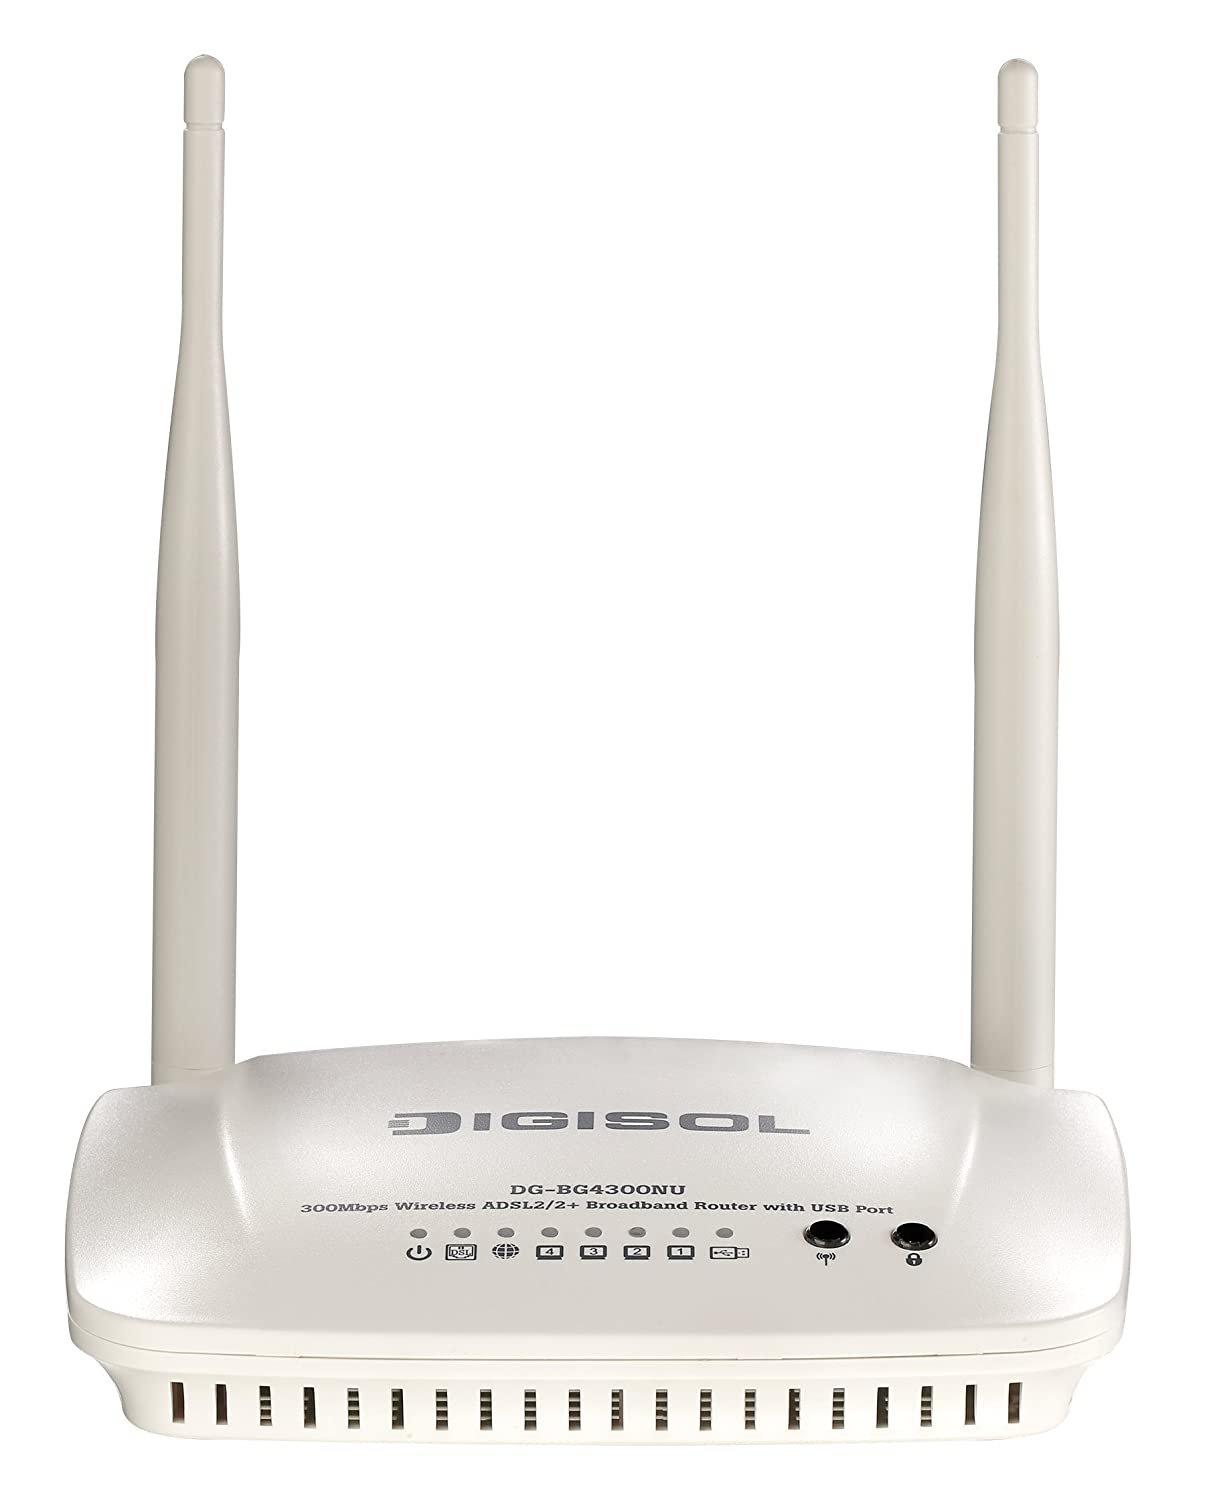 Amazon In Buy Digisol Dg Bg4300nu Wireless Adsl 2 2 Broadband Router With Usb Port Online At Low Prices In India Digisol Reviews Ratings